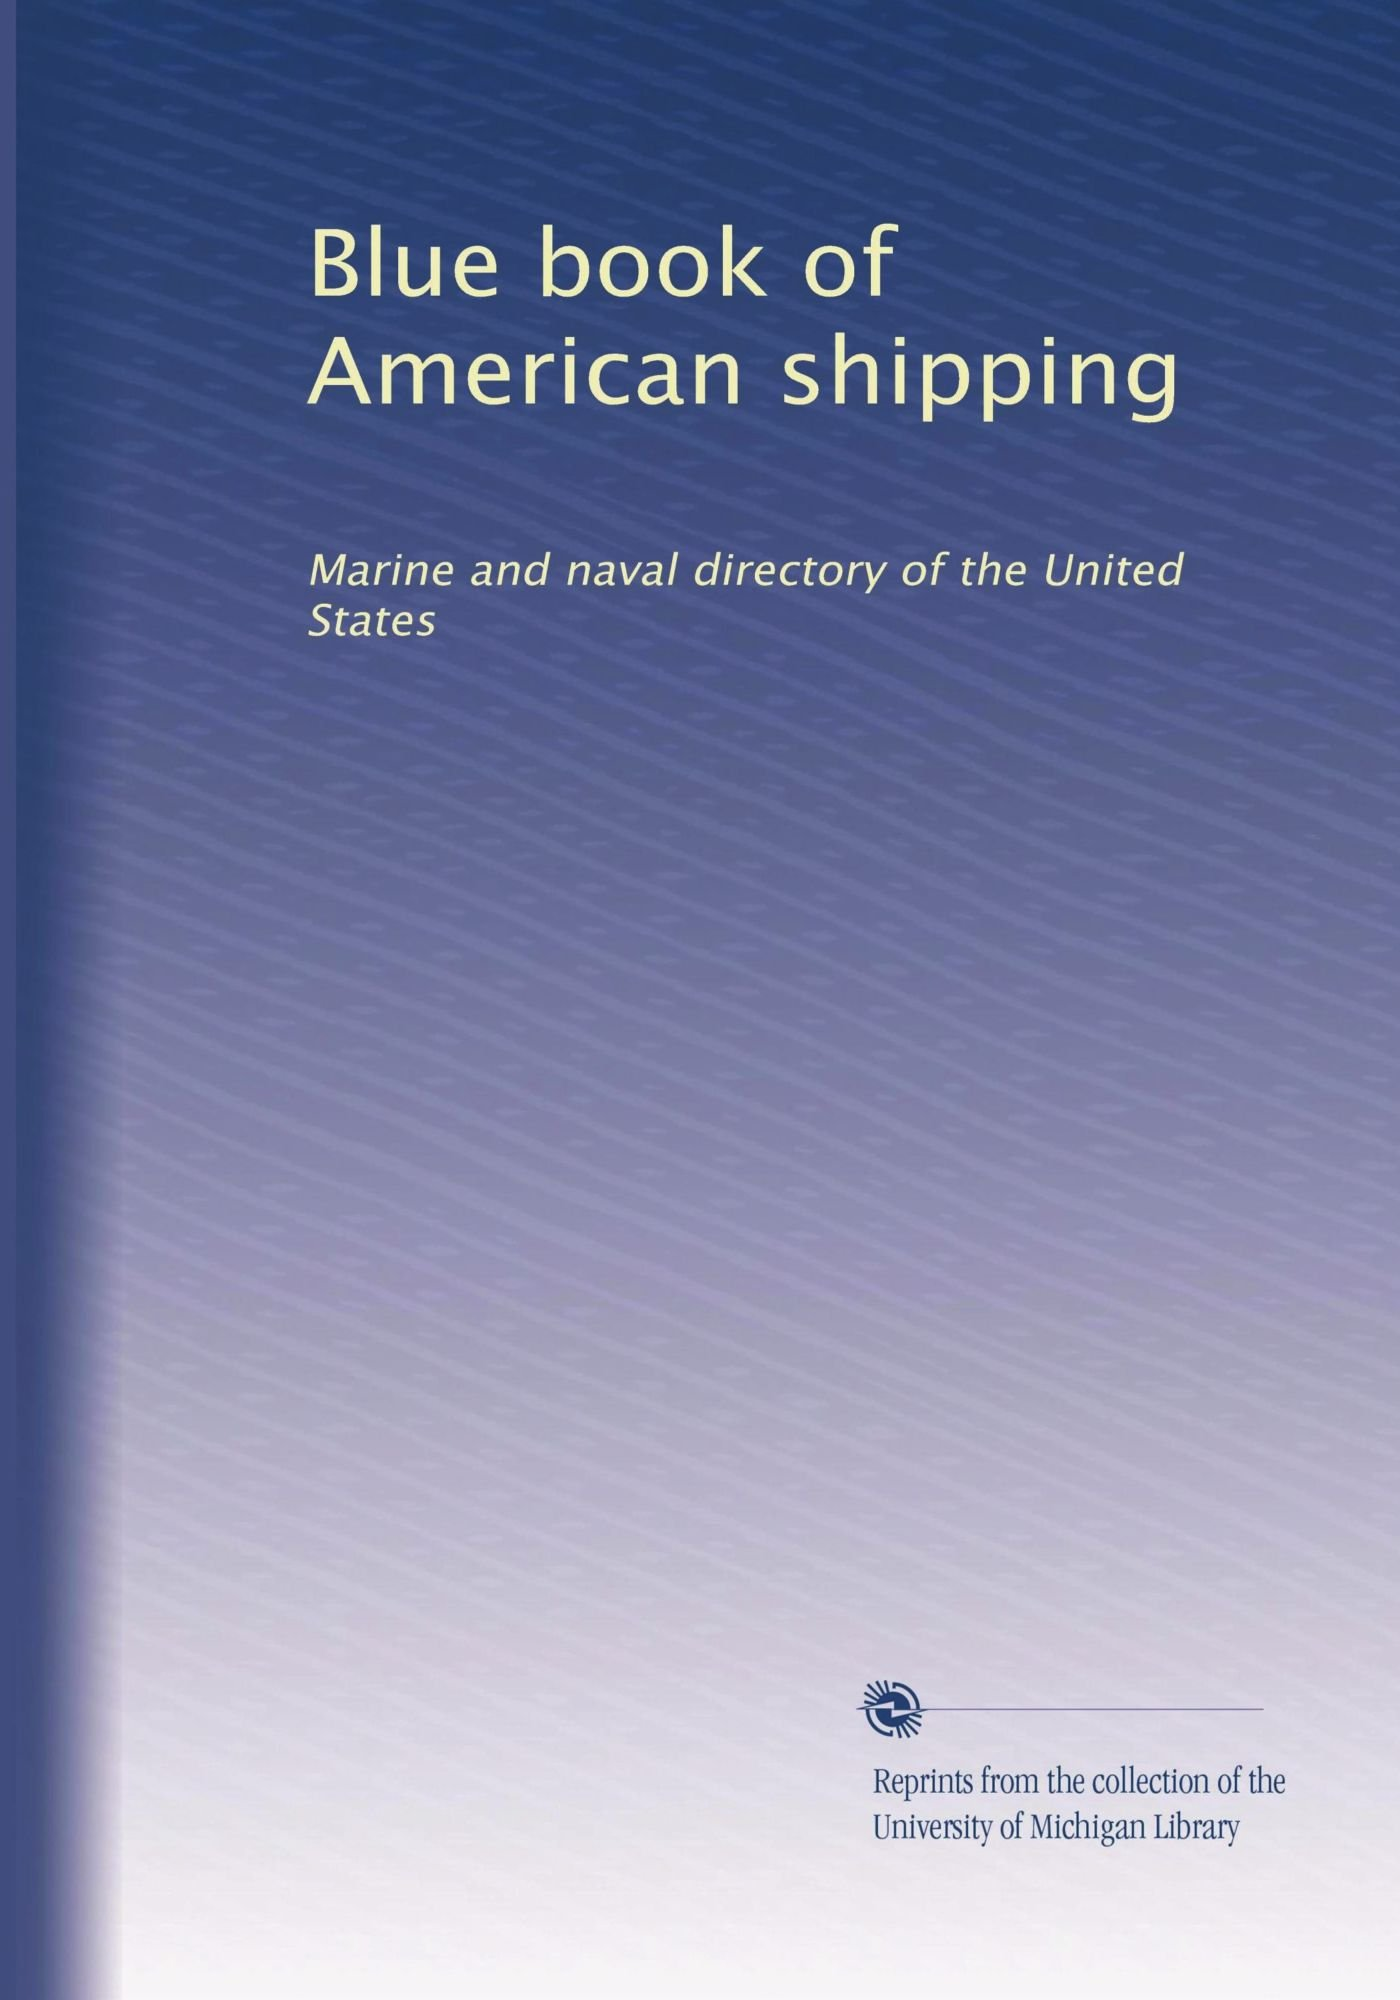 Download Blue book of American shipping: Marine and naval directory of the United States (Volume 3) pdf